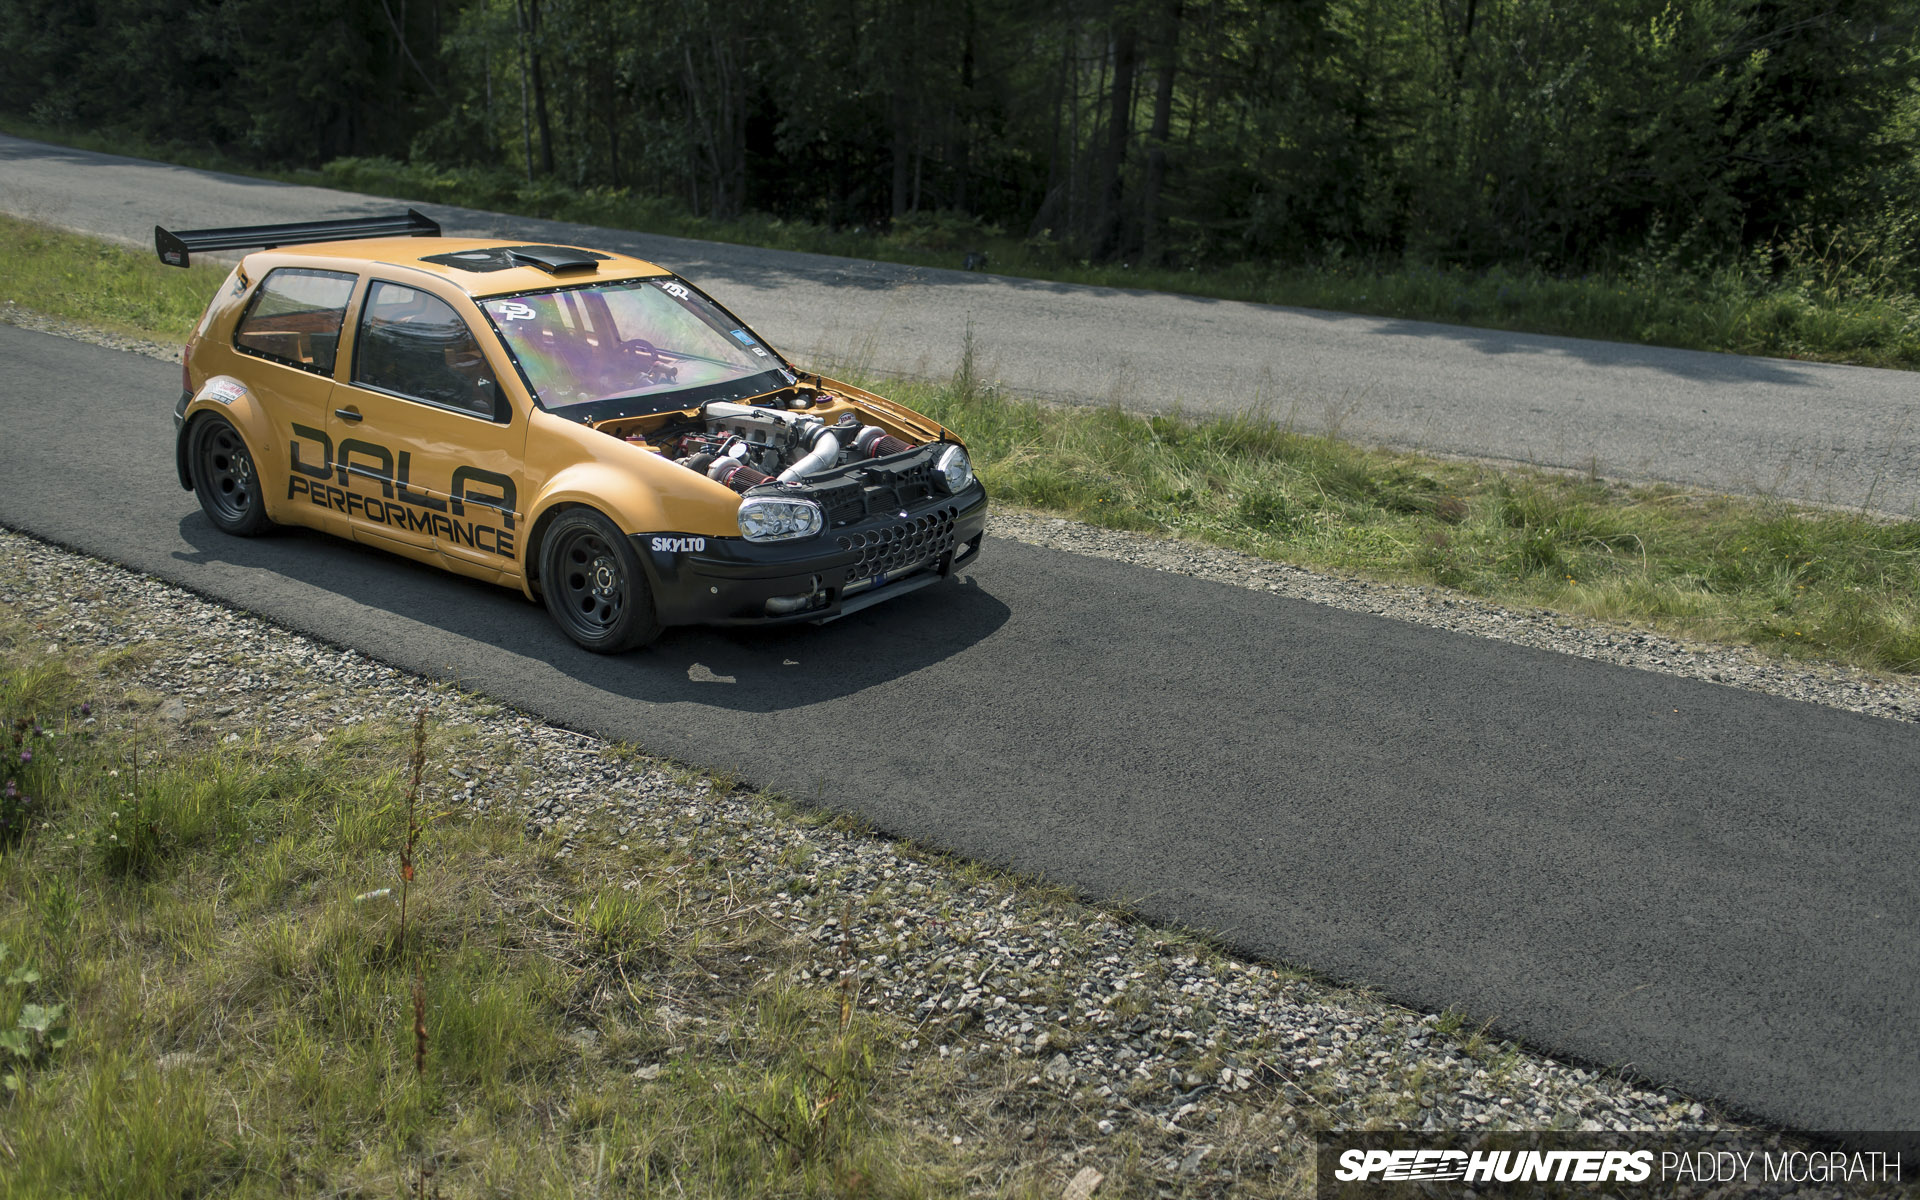 Two Turbos Eight Cylinders A Vw Golf To Decimate All Speedhunters